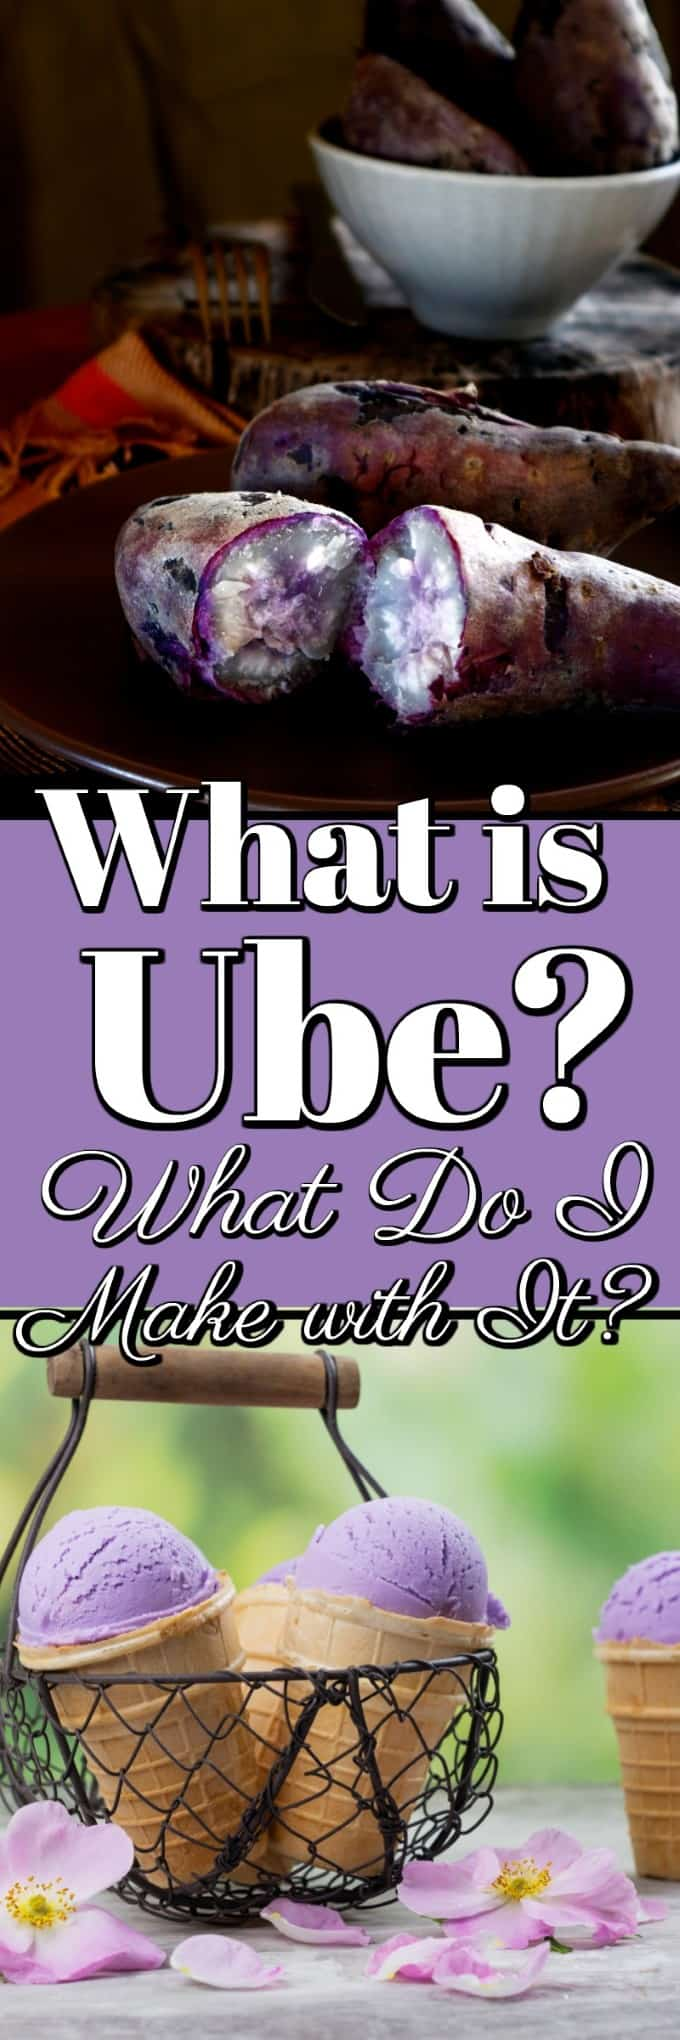 What is Ube? What Do I Make With It? This purple sweet potato is all the rage for lovely colored lilac desserts. Come and learn all about it! #howto #Ube